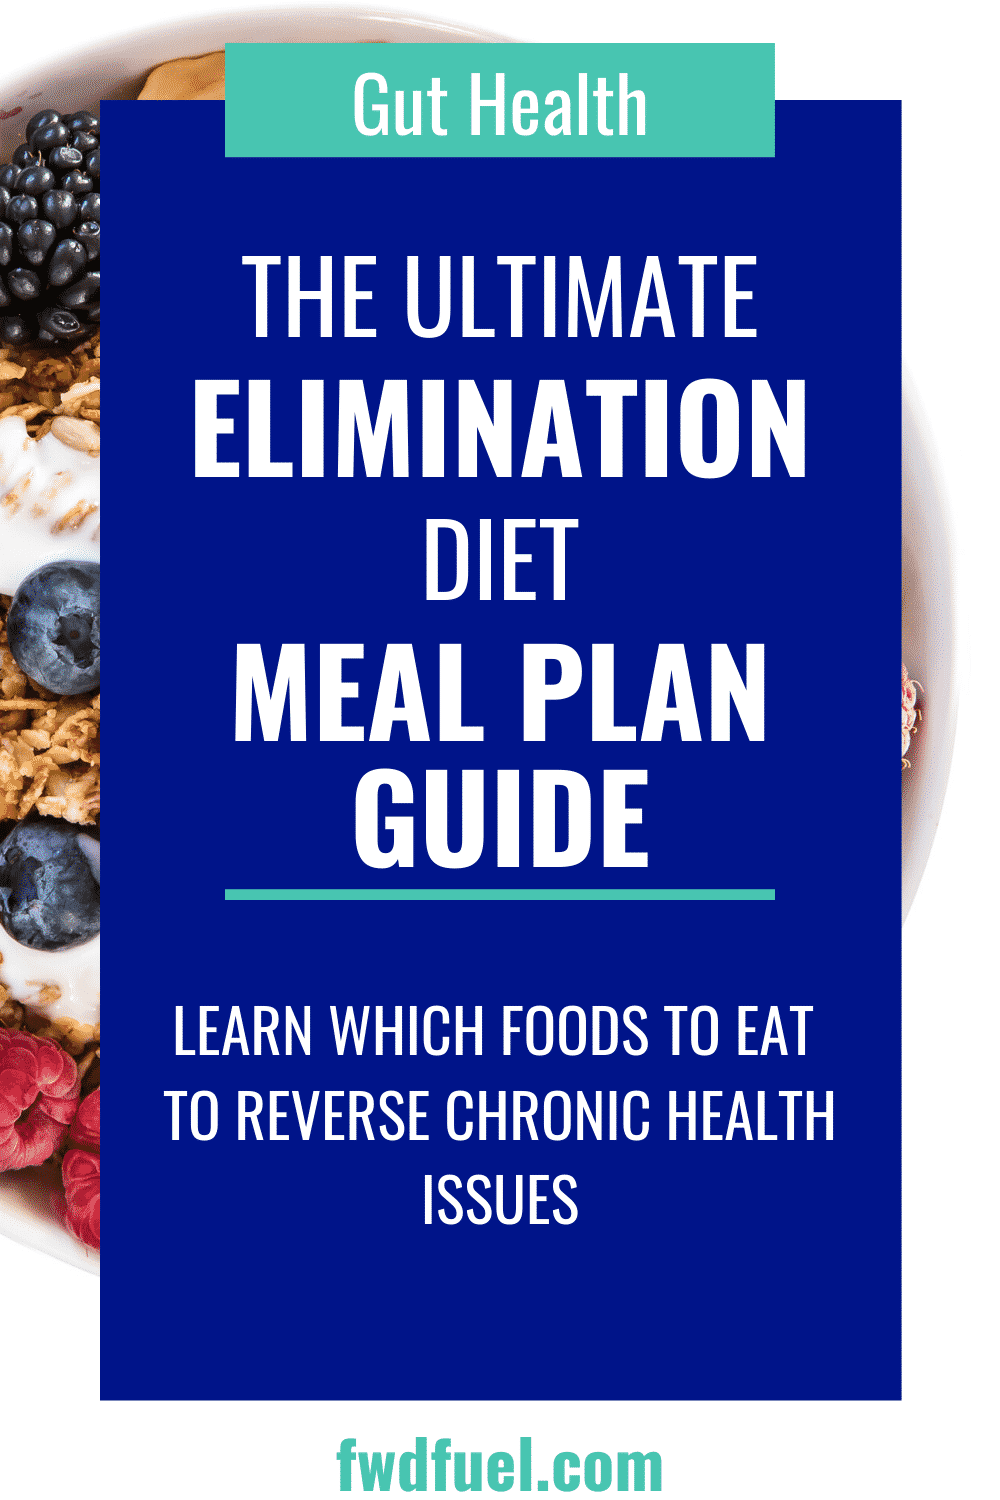 The Ultimate Elimination Diet Meal Plan Guide Fwdfuel In 2021 Elimination Diet Meal Plan Elimination Diet Diet Meal Plans